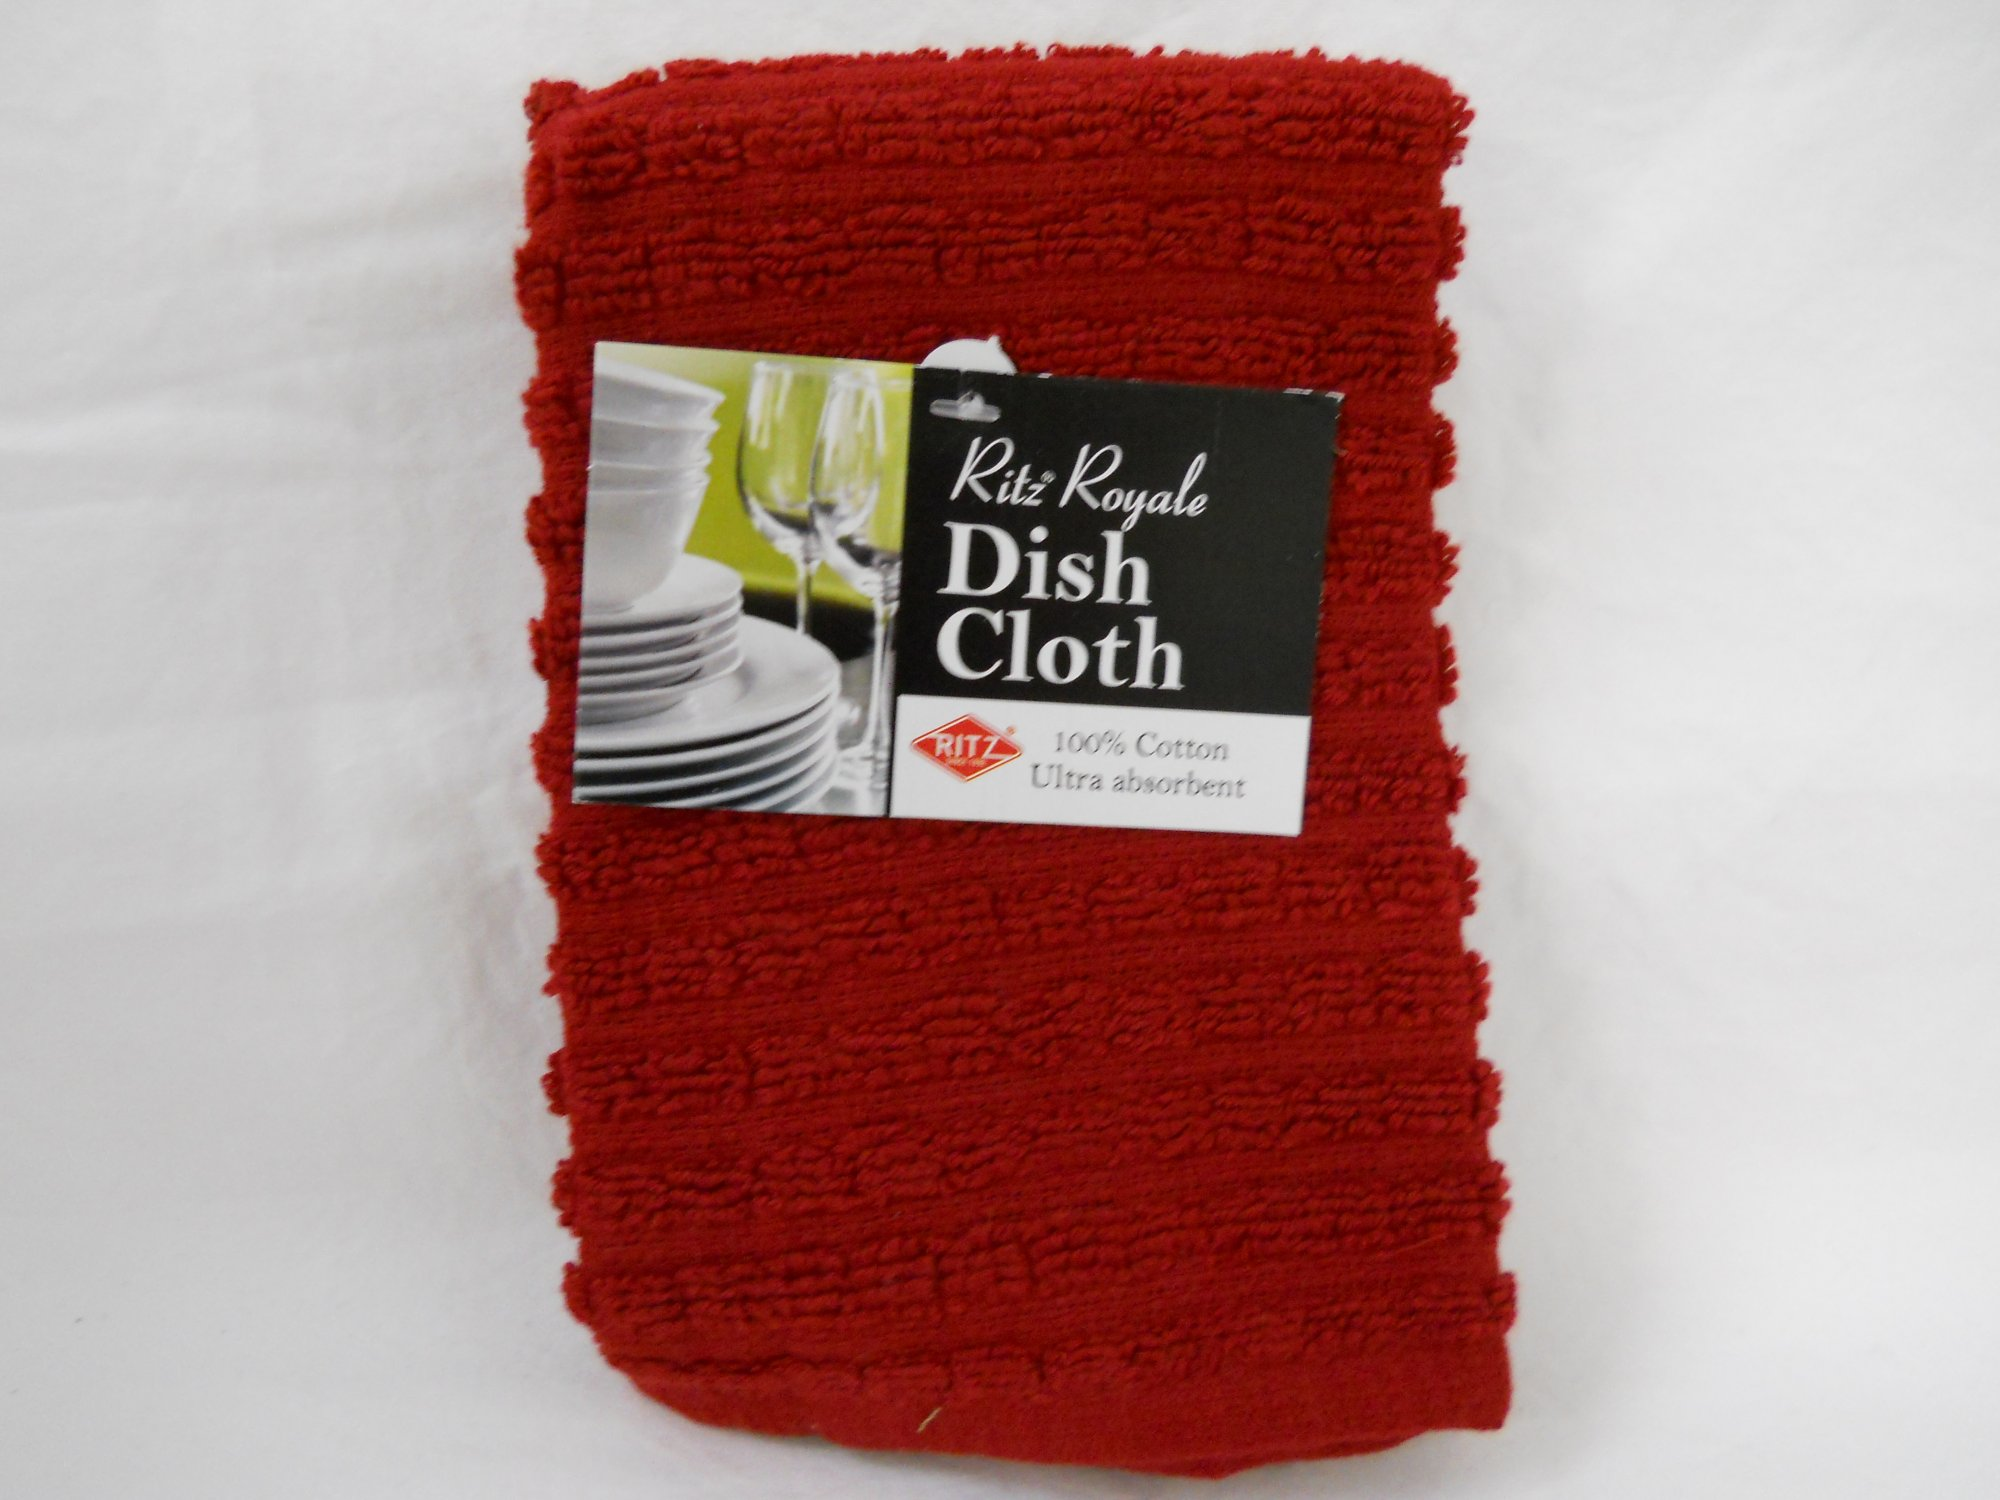 Ritz Royale dish cloth paprika